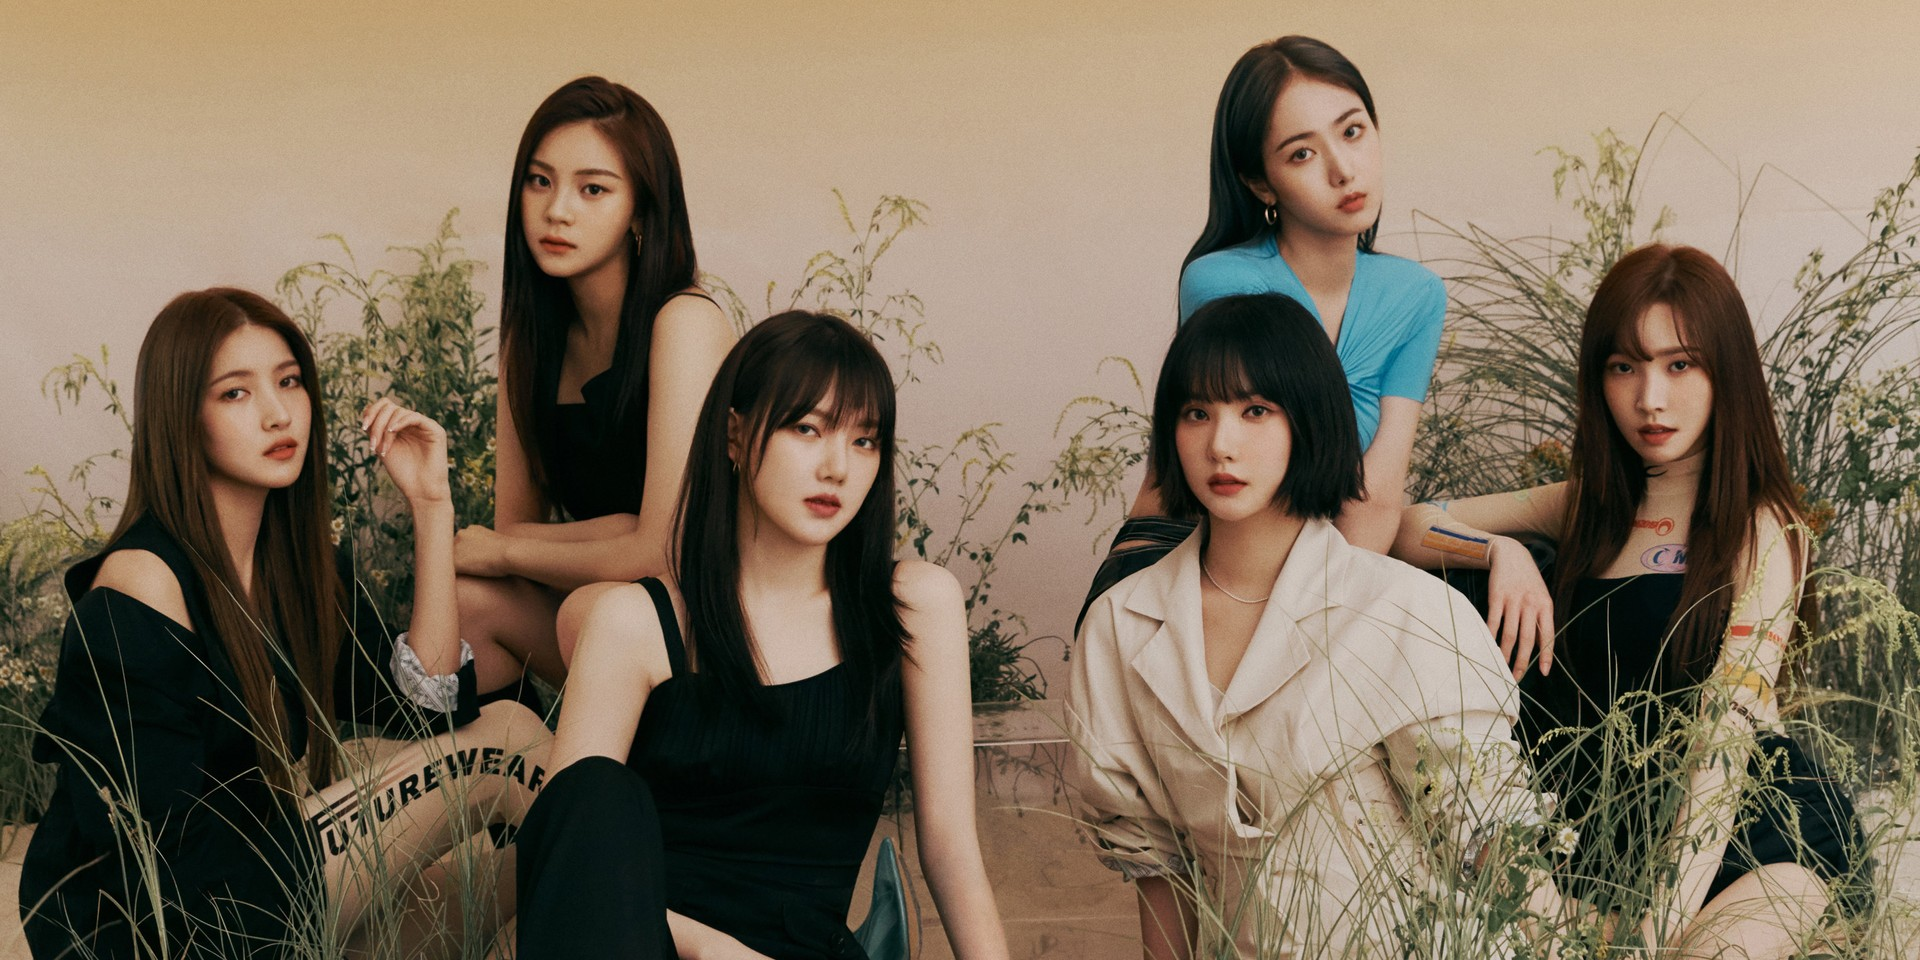 GFRIEND comfort fans with handwritten letters as they end contract with Source Music, fans show support and appreciation with #ThankYouGFriend